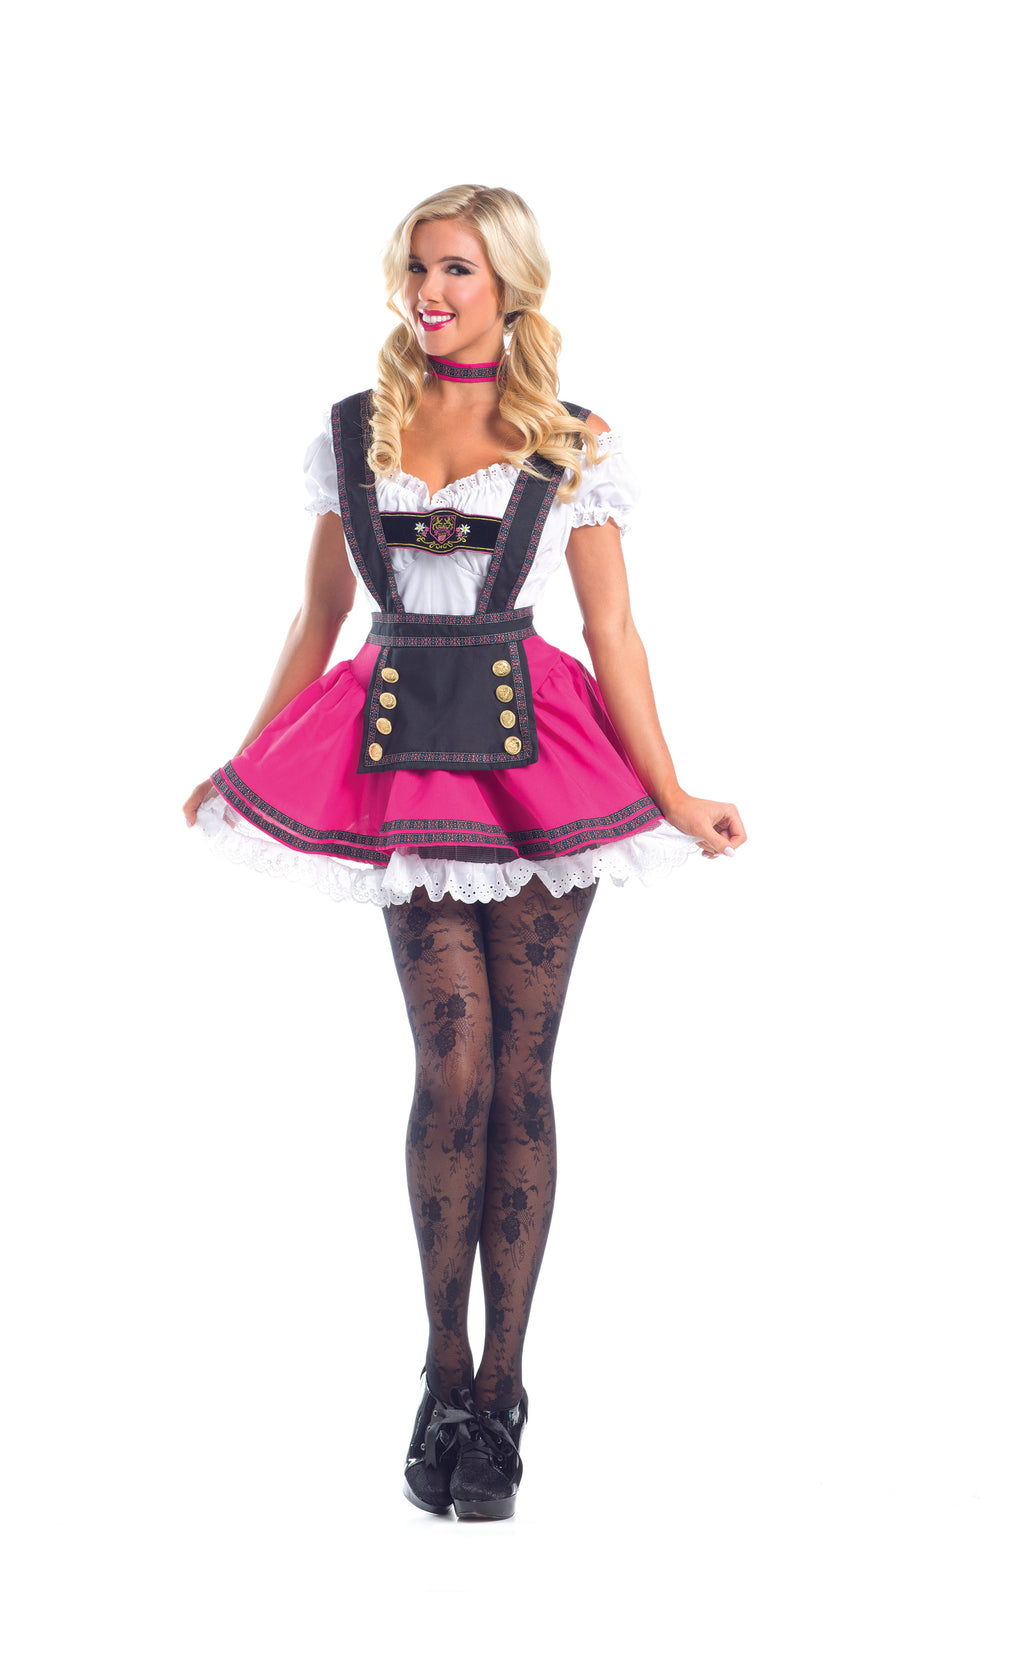 Adult-Women's-3-Piece-Sexy-Swiss-Chick-Halloween-Party-Costume-